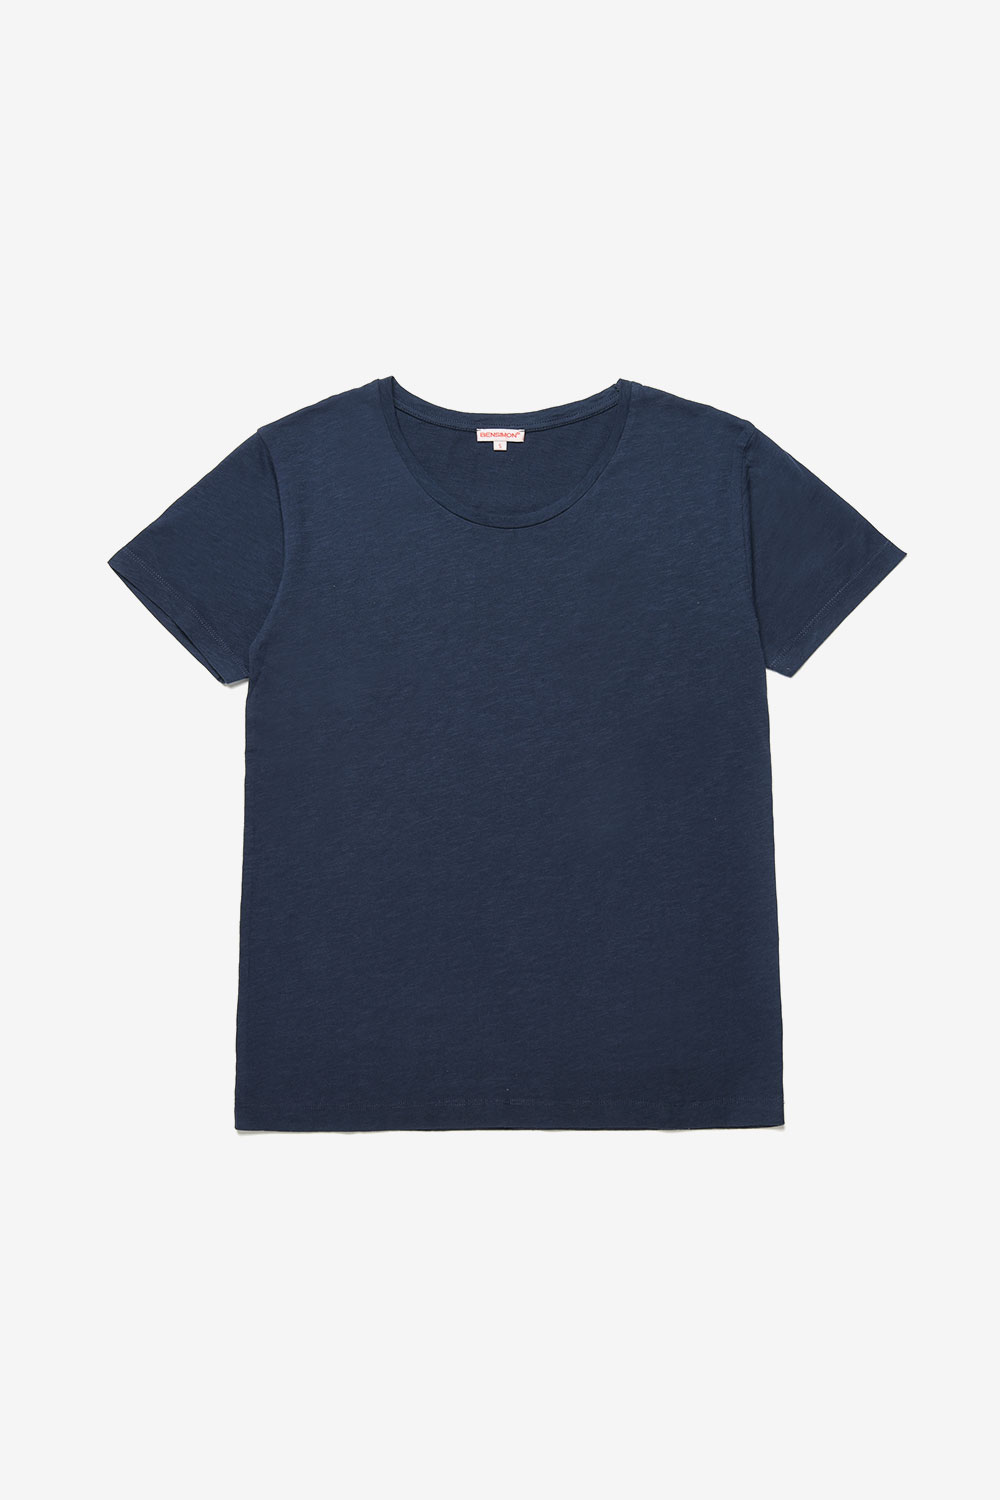 Tee Shirt Pernille_Navy BS0STS101NV